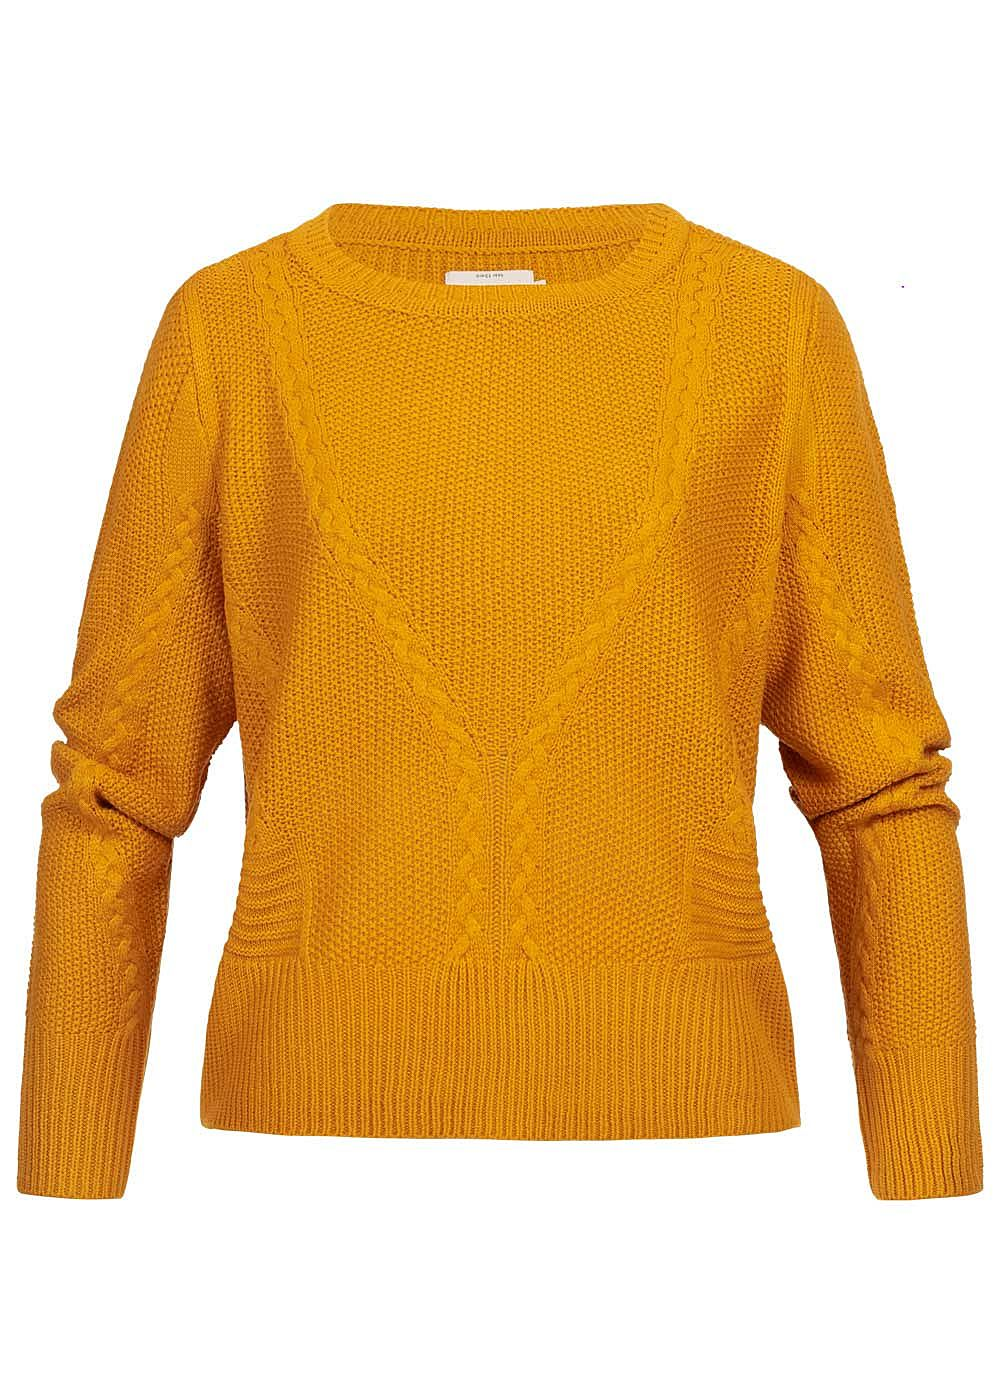 ONLY Damen Cable Knit Pullover golden gelb - Art.-Nr.: 19083337-L-YE